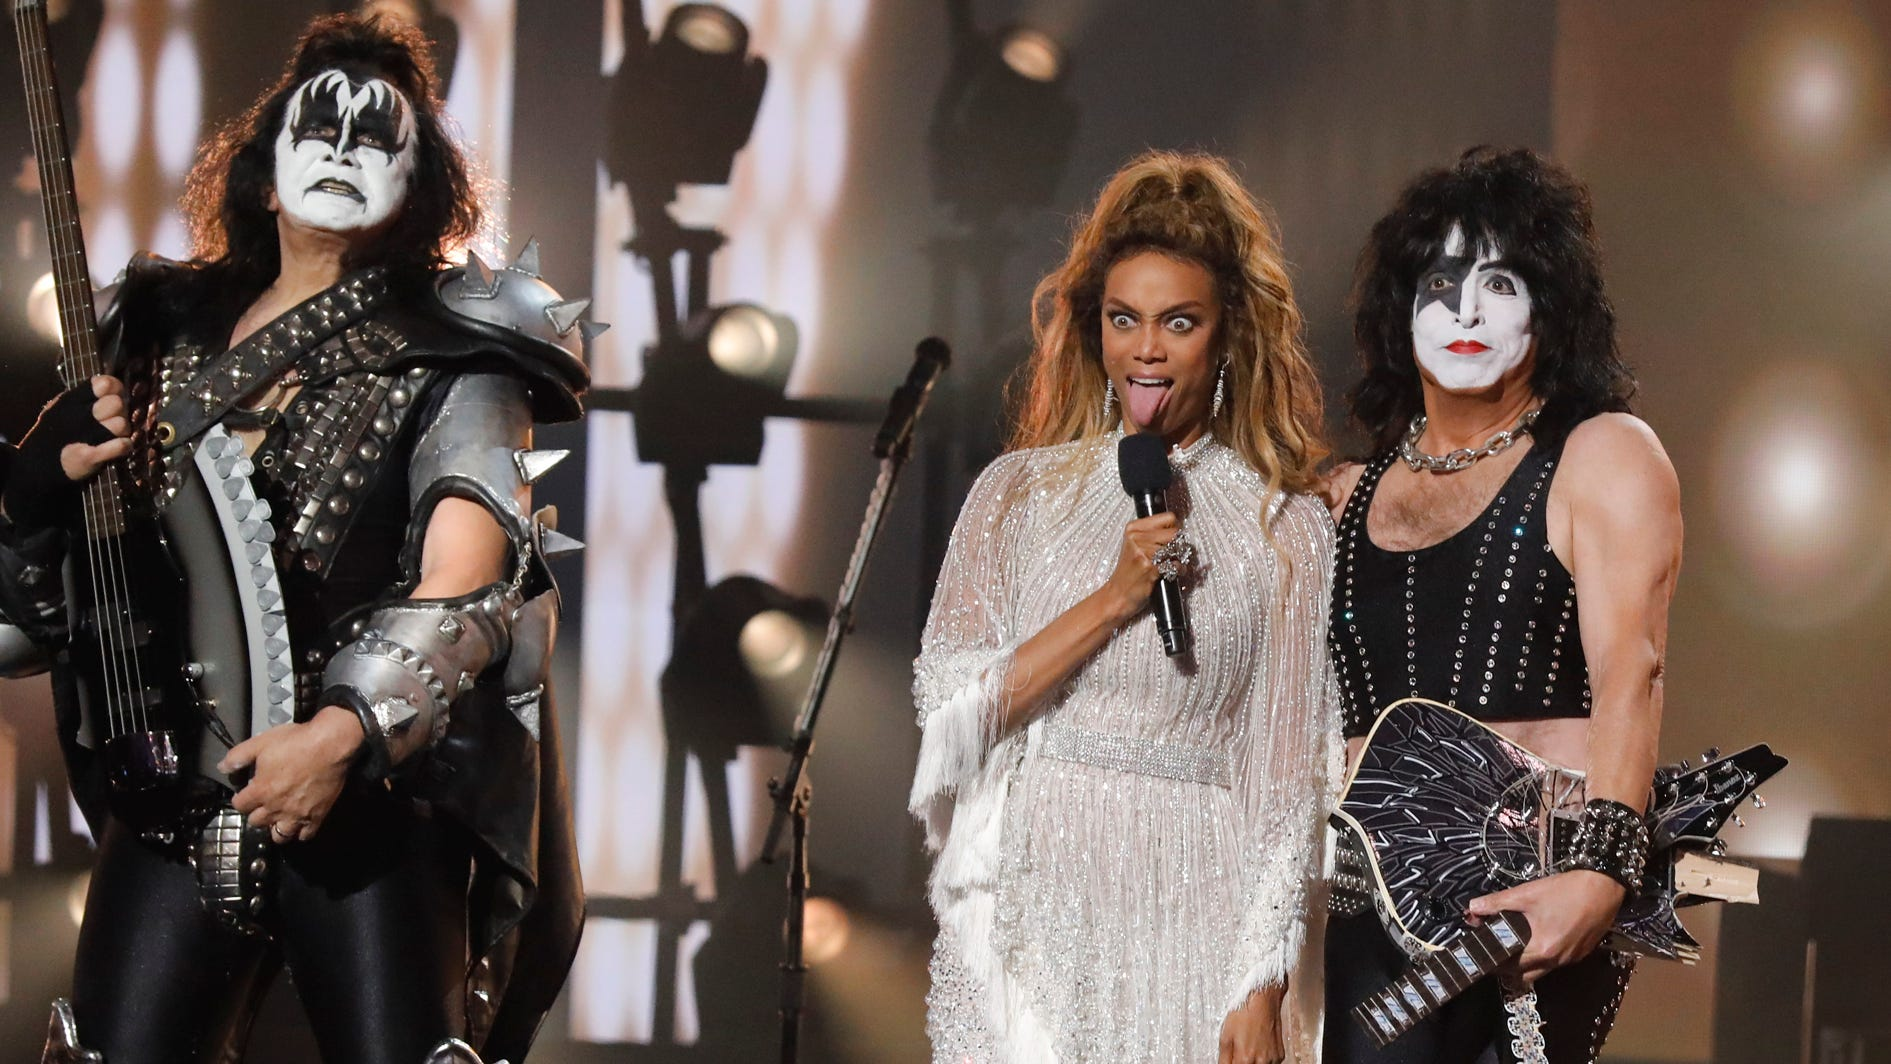 """AMERICA'S GOT TALENT -- """"Live Finale Results"""" Episode 1322 -- Pictured: (l-r) Gene Simmons, Tyra Banks, Paul Stanley, Tommy Thayer of KISS -- (Photo by: Trae Patton/NBC)"""